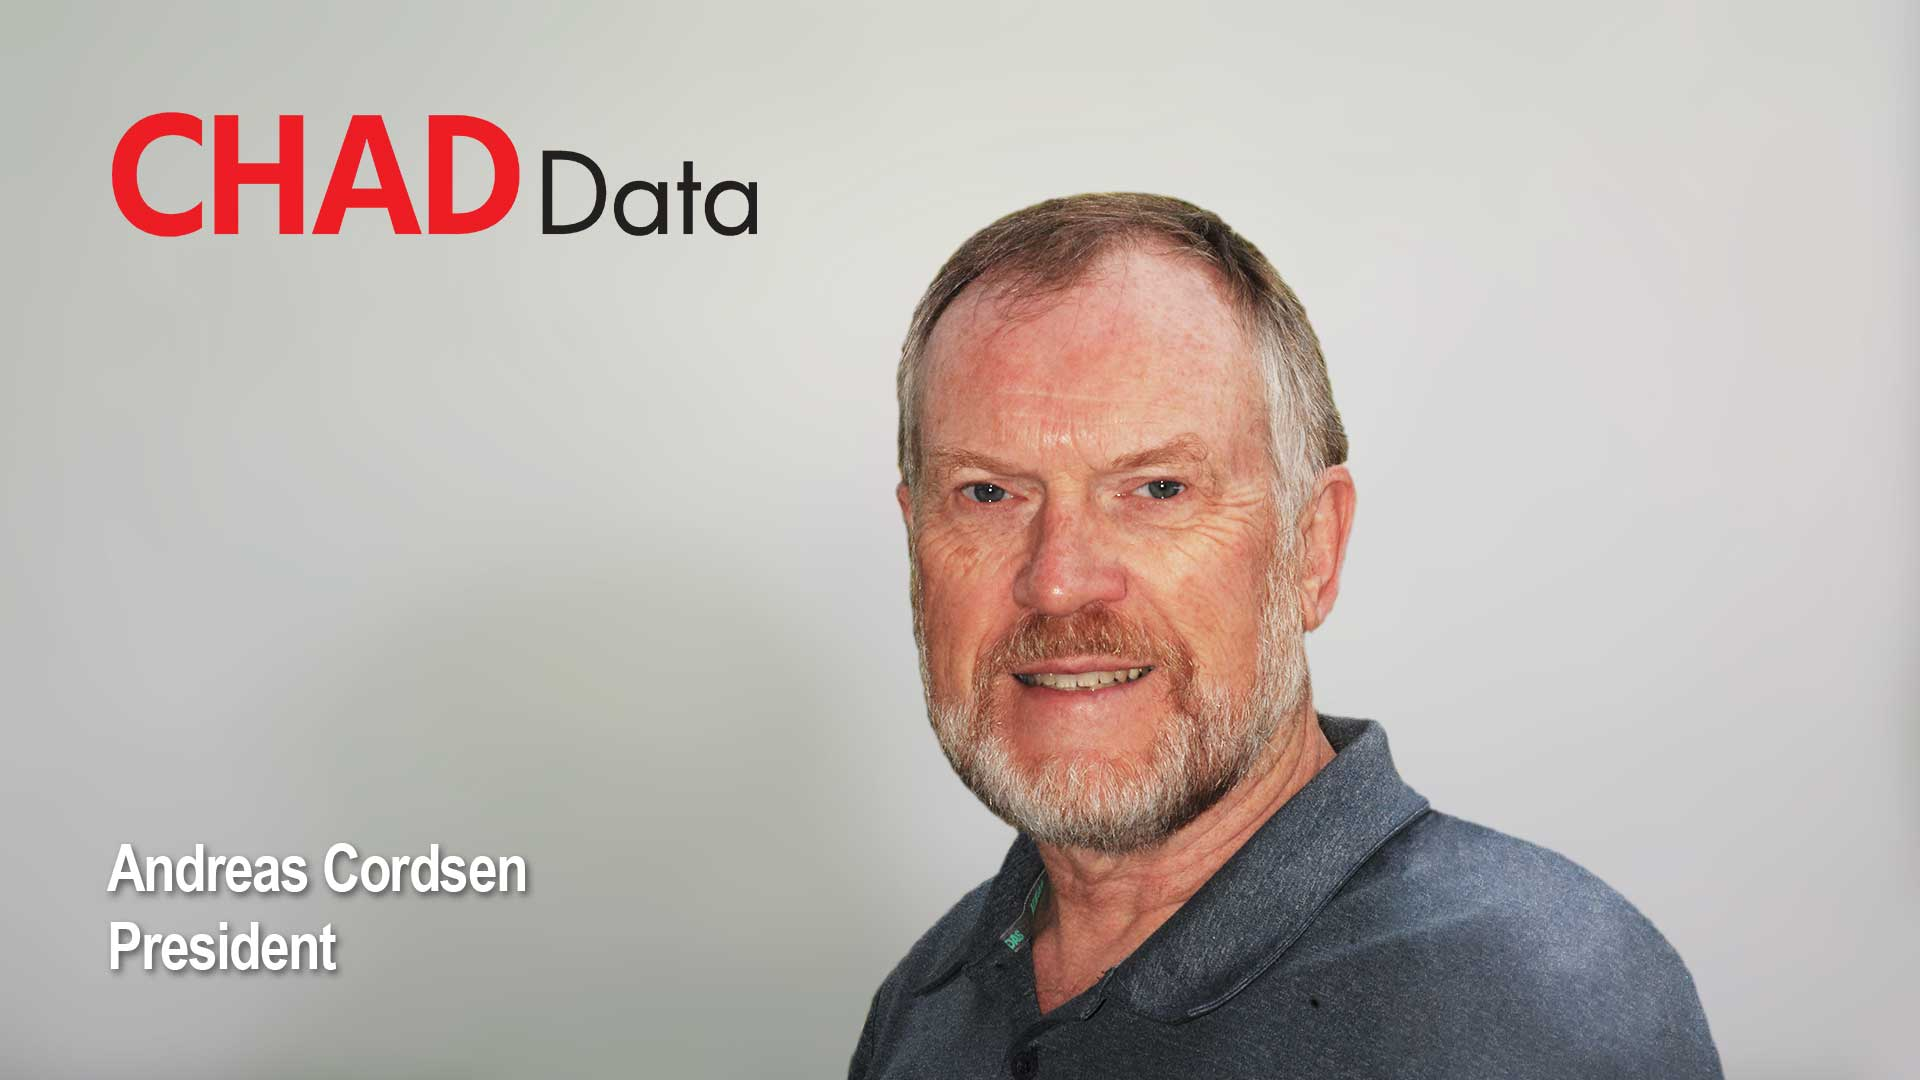 Photograph of Andreas Cordsen, president of CHAD Data